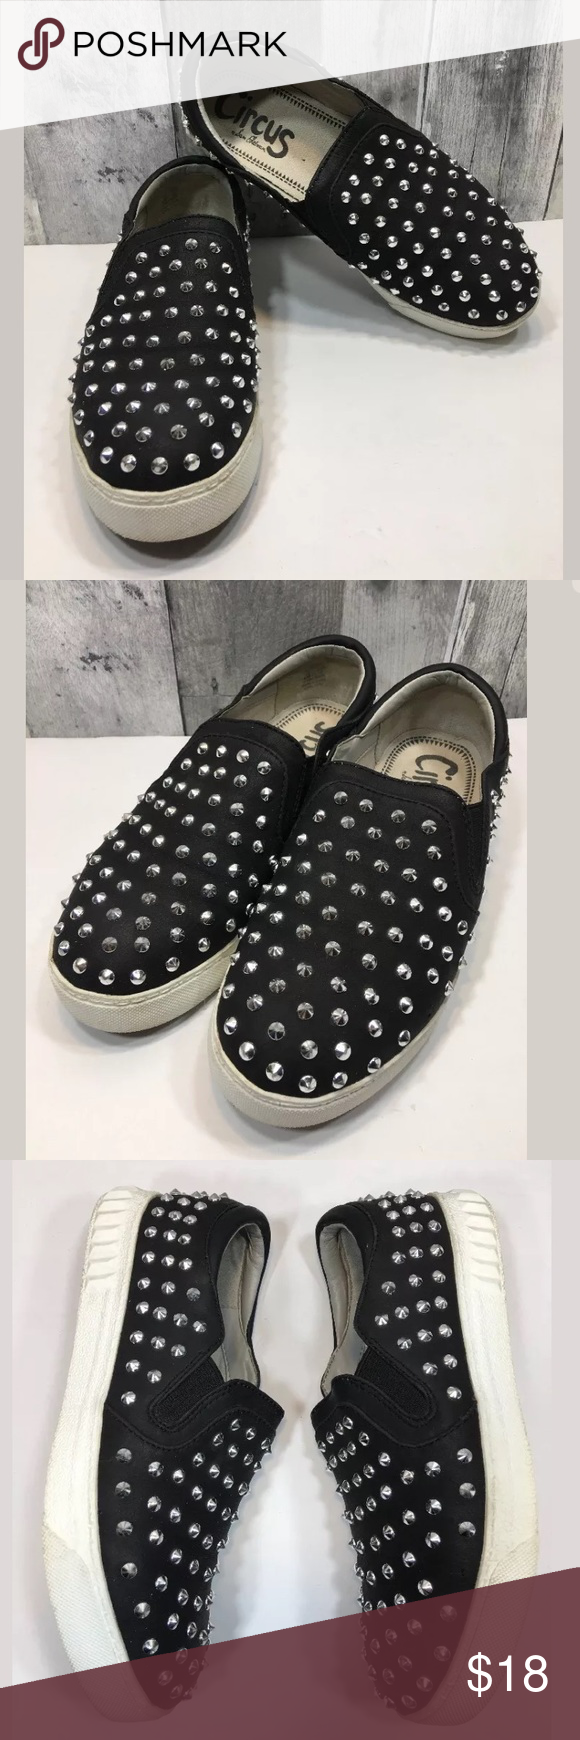 d614816d8 Circus Sam Edelman Carlson Studded Slip On Shoes Circus By Sam Edelman  Carlson Black Studded Slip On Sneakers Shoes Sz 6 Shoes are in great used  condition!